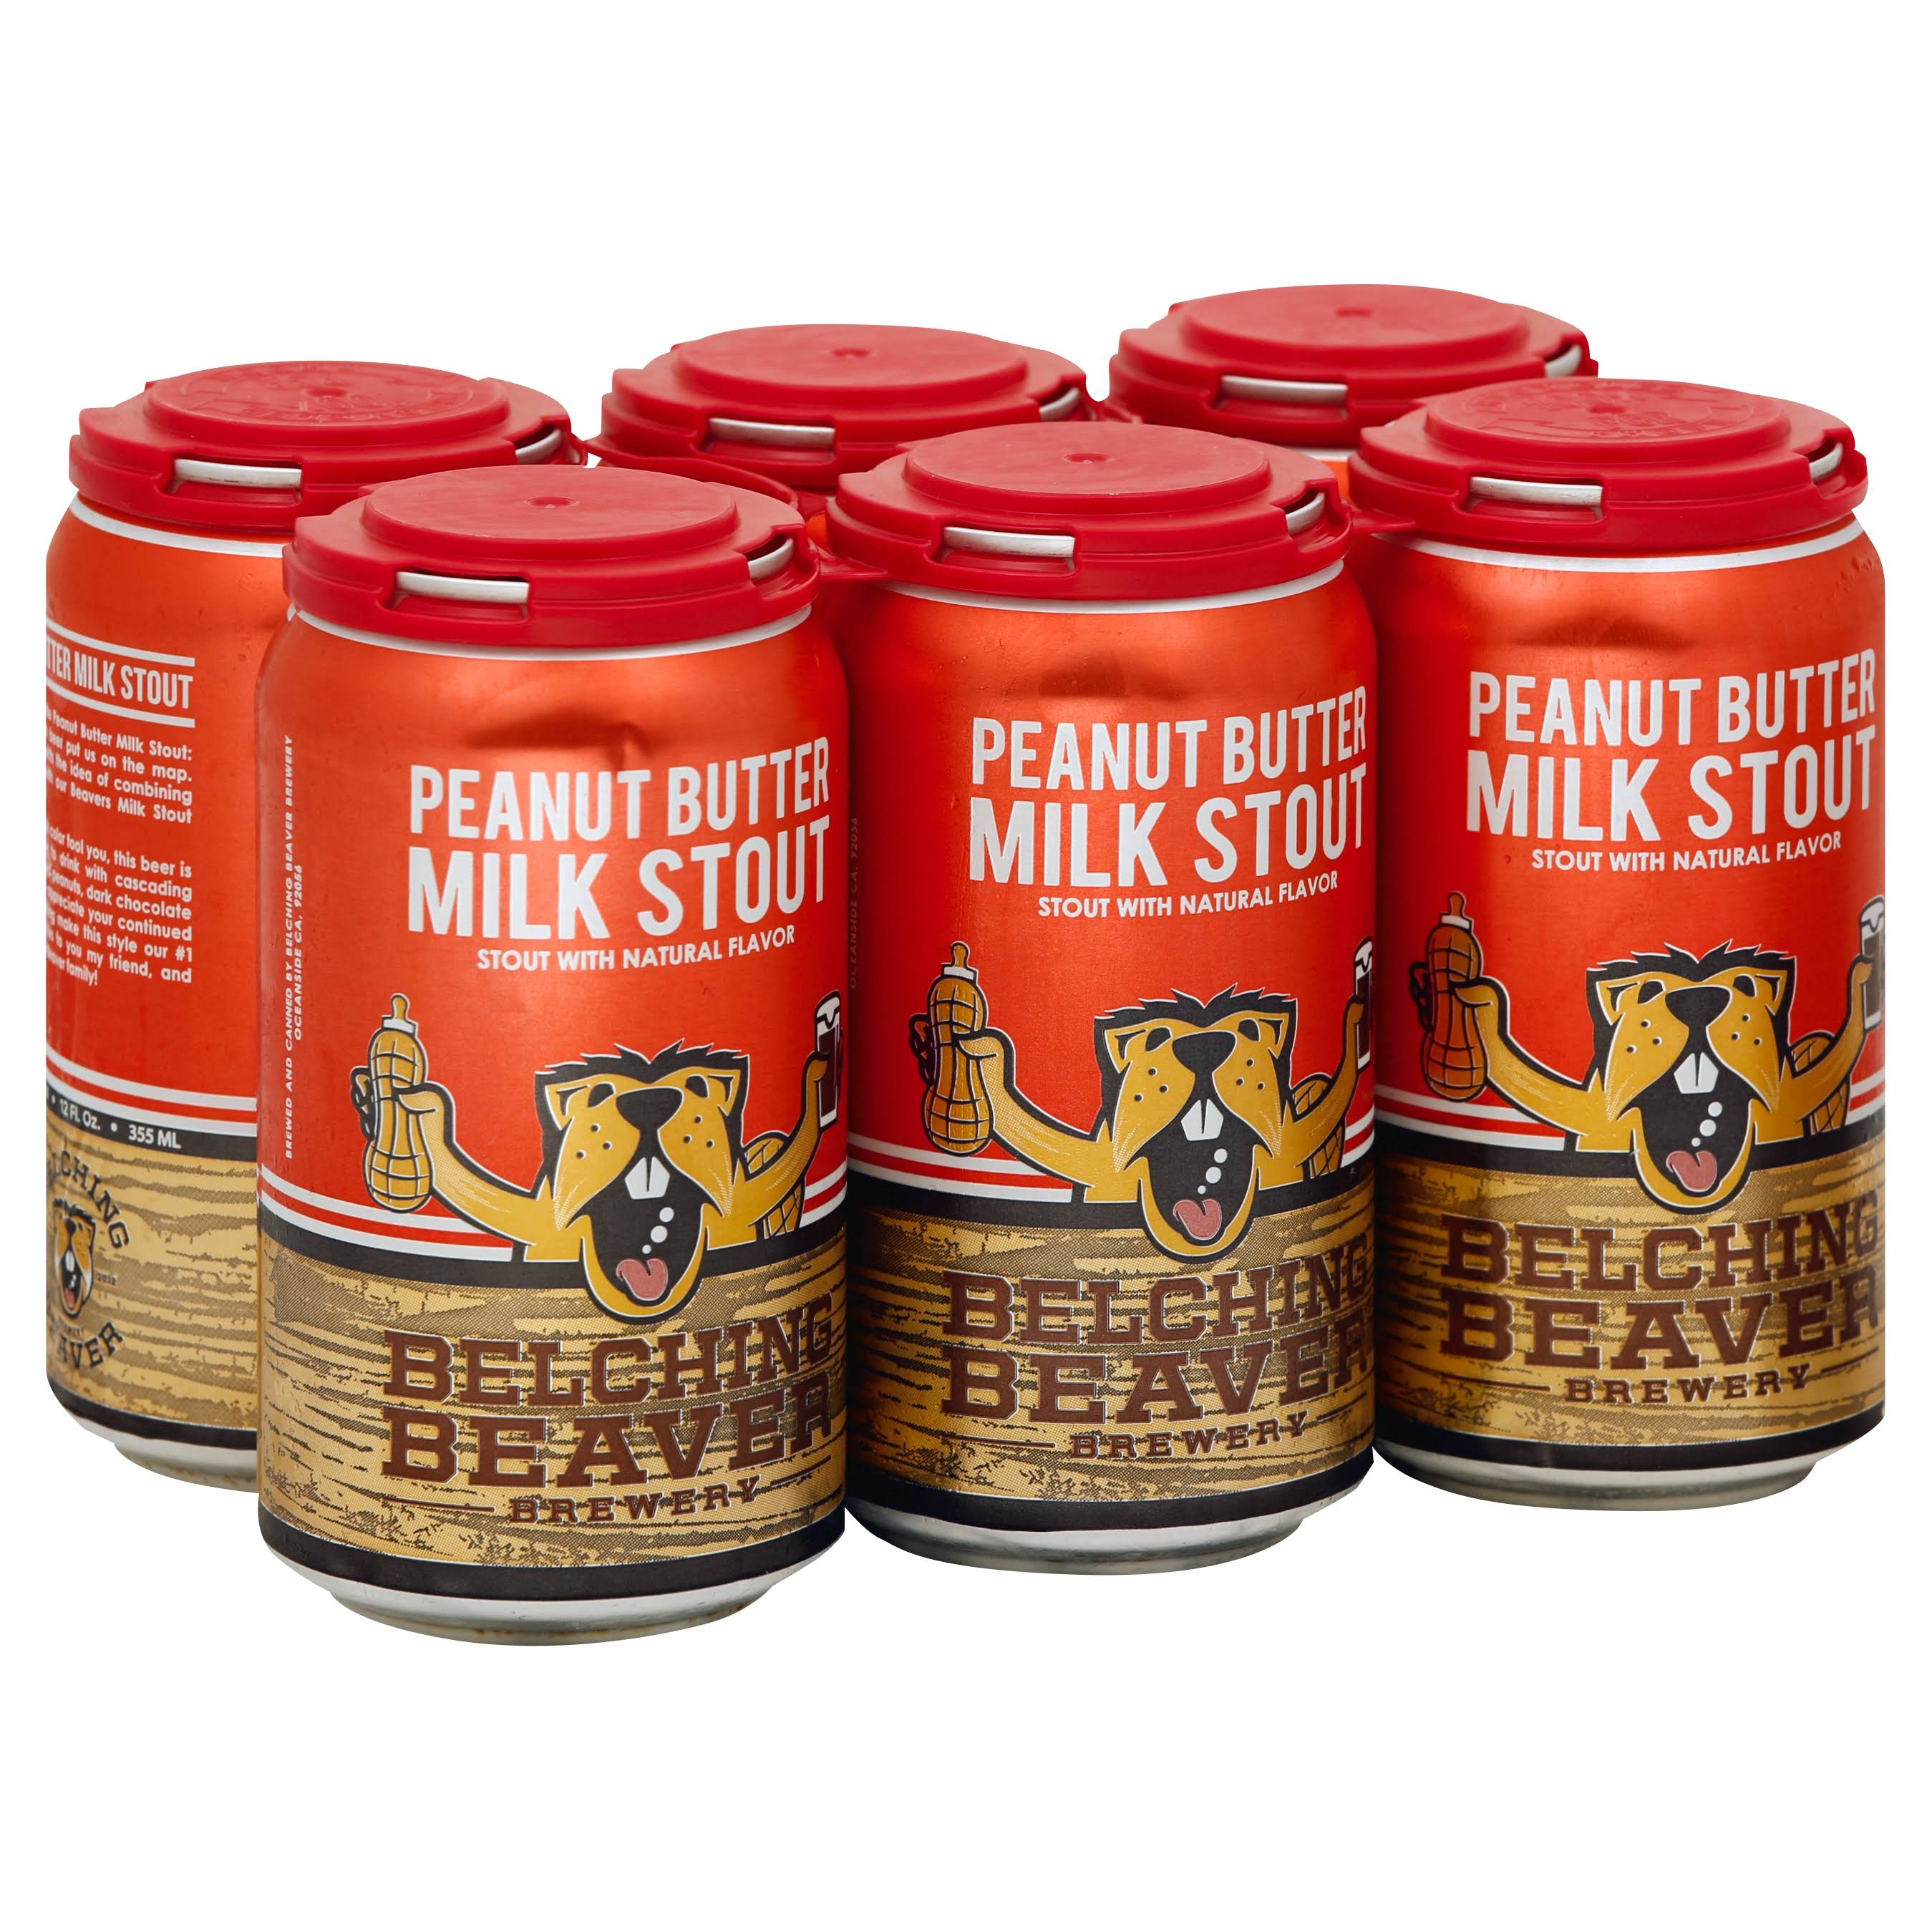 Belching Beaver Sweet Stout - 6 pack, 12 fl oz cans